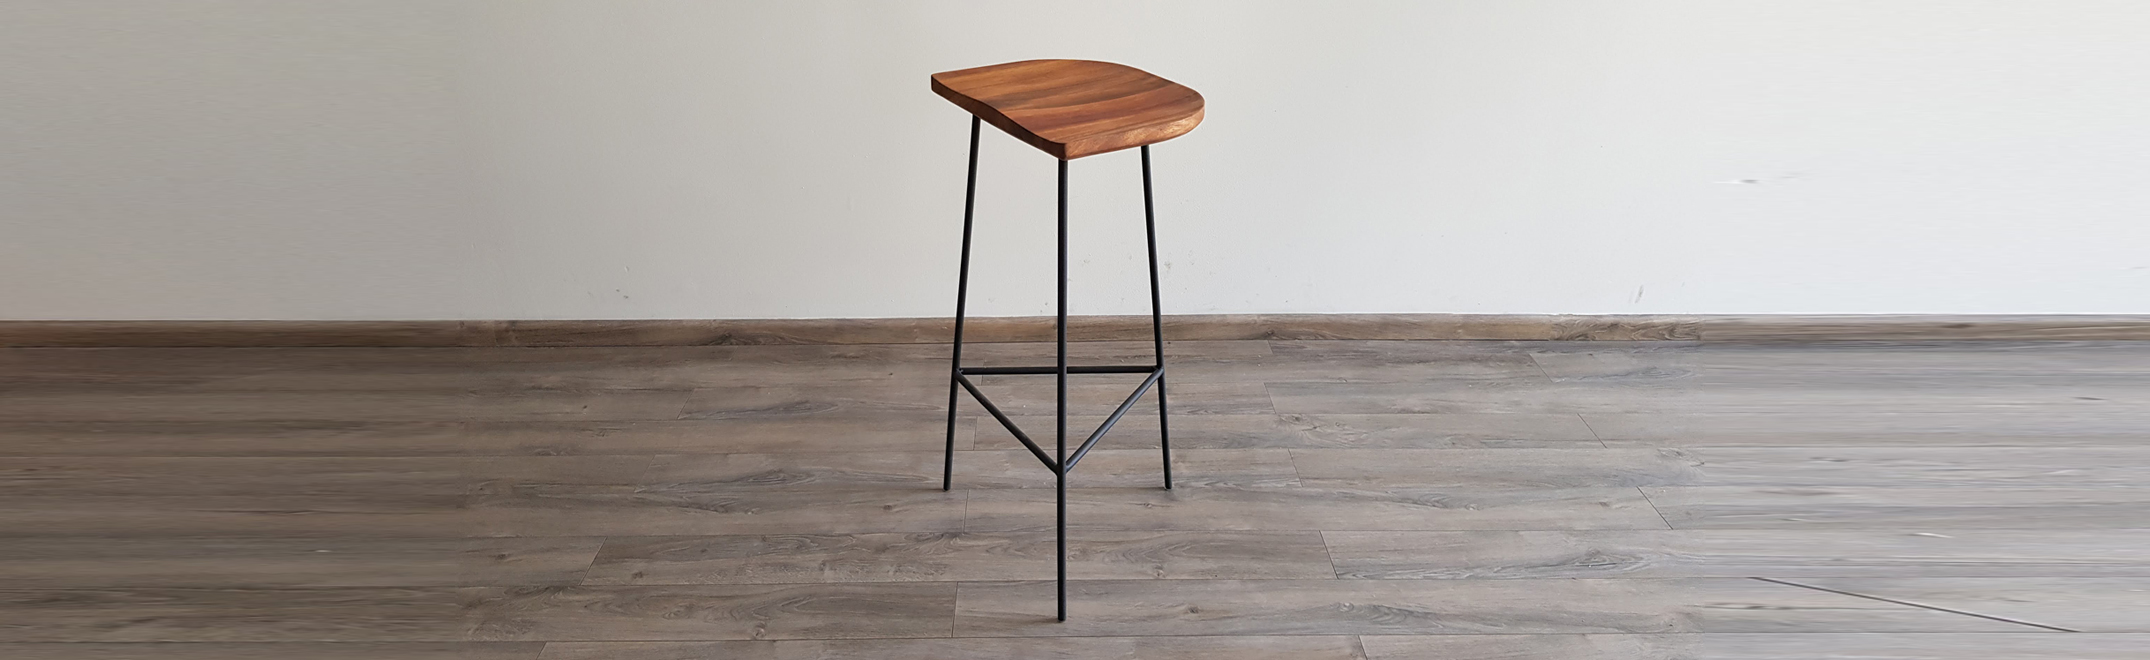 Stool - Taburete - Madera - Wood